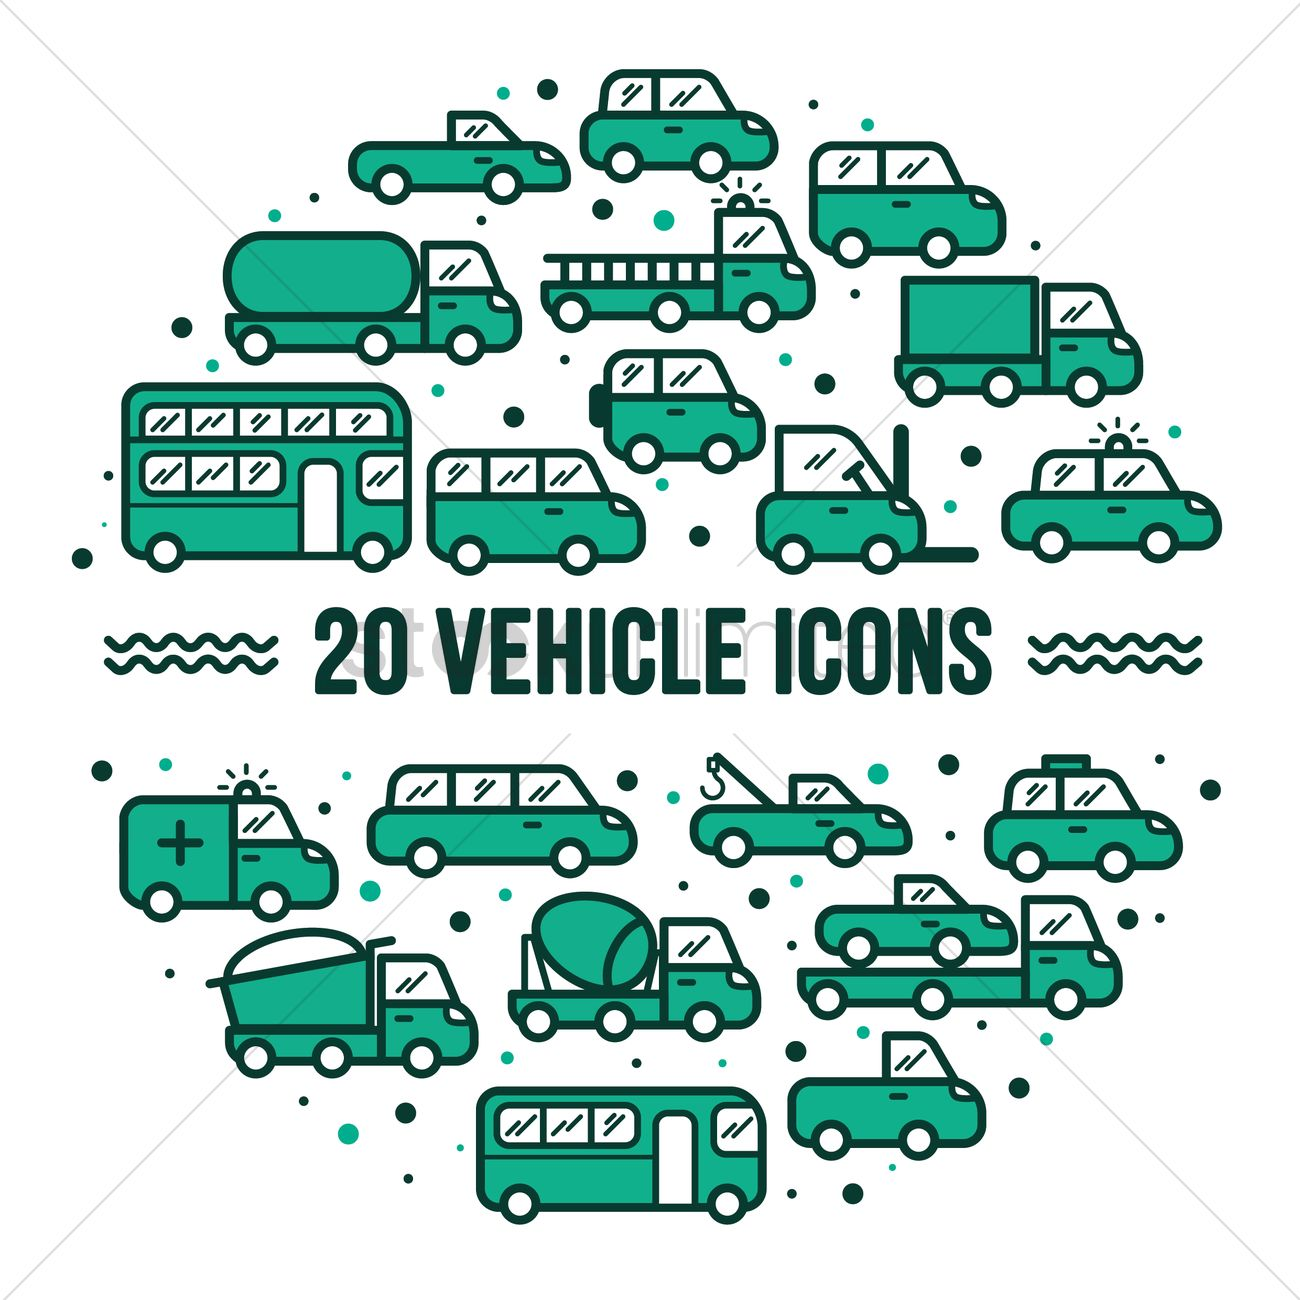 Collection of vehicle icons Vector Image - 1535178 | StockUnlimited